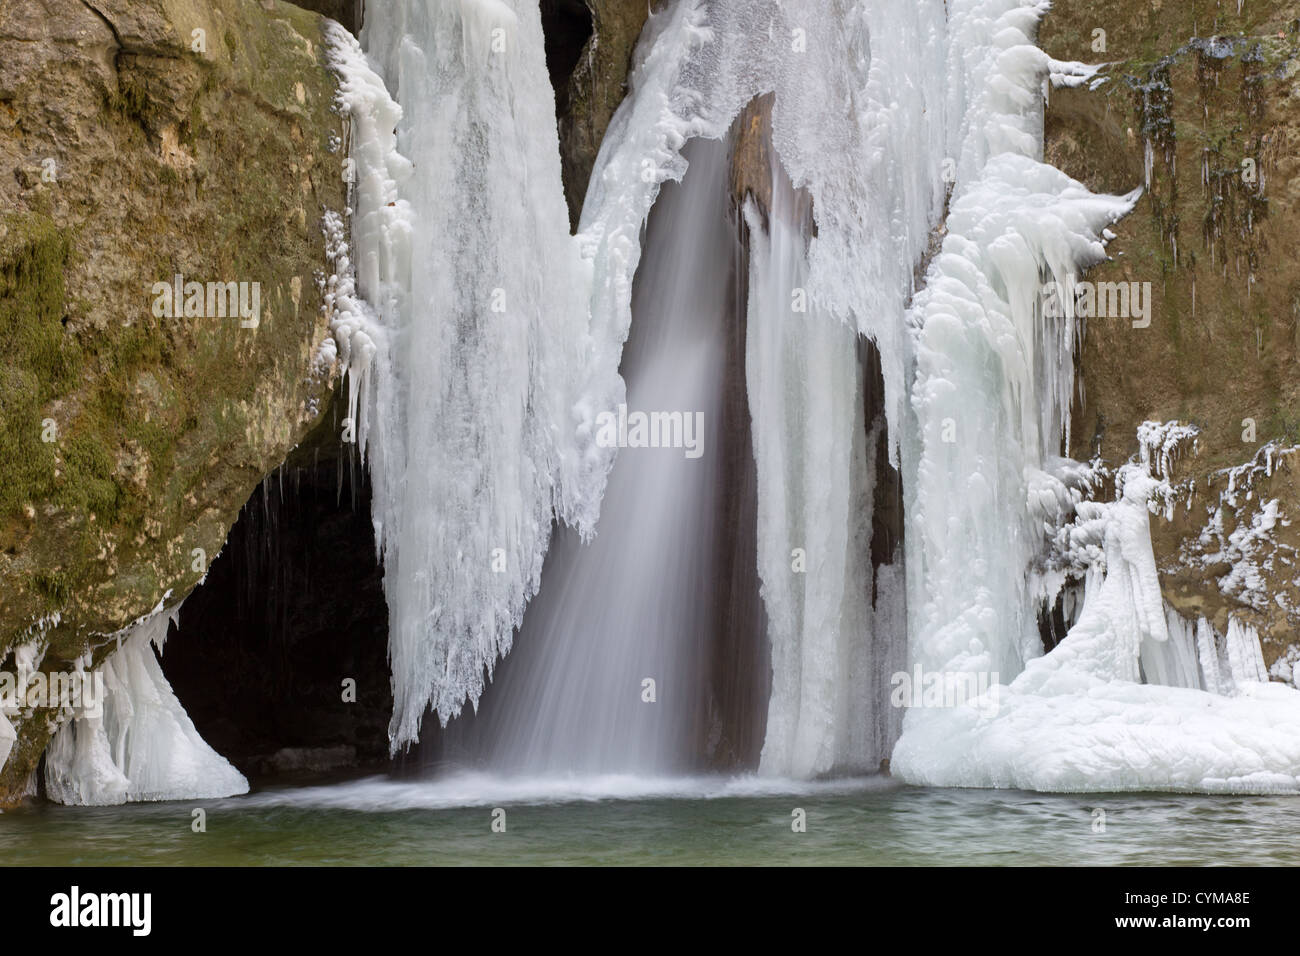 Beautiful particular frozen waterfall Tine de conflens - Stock Image